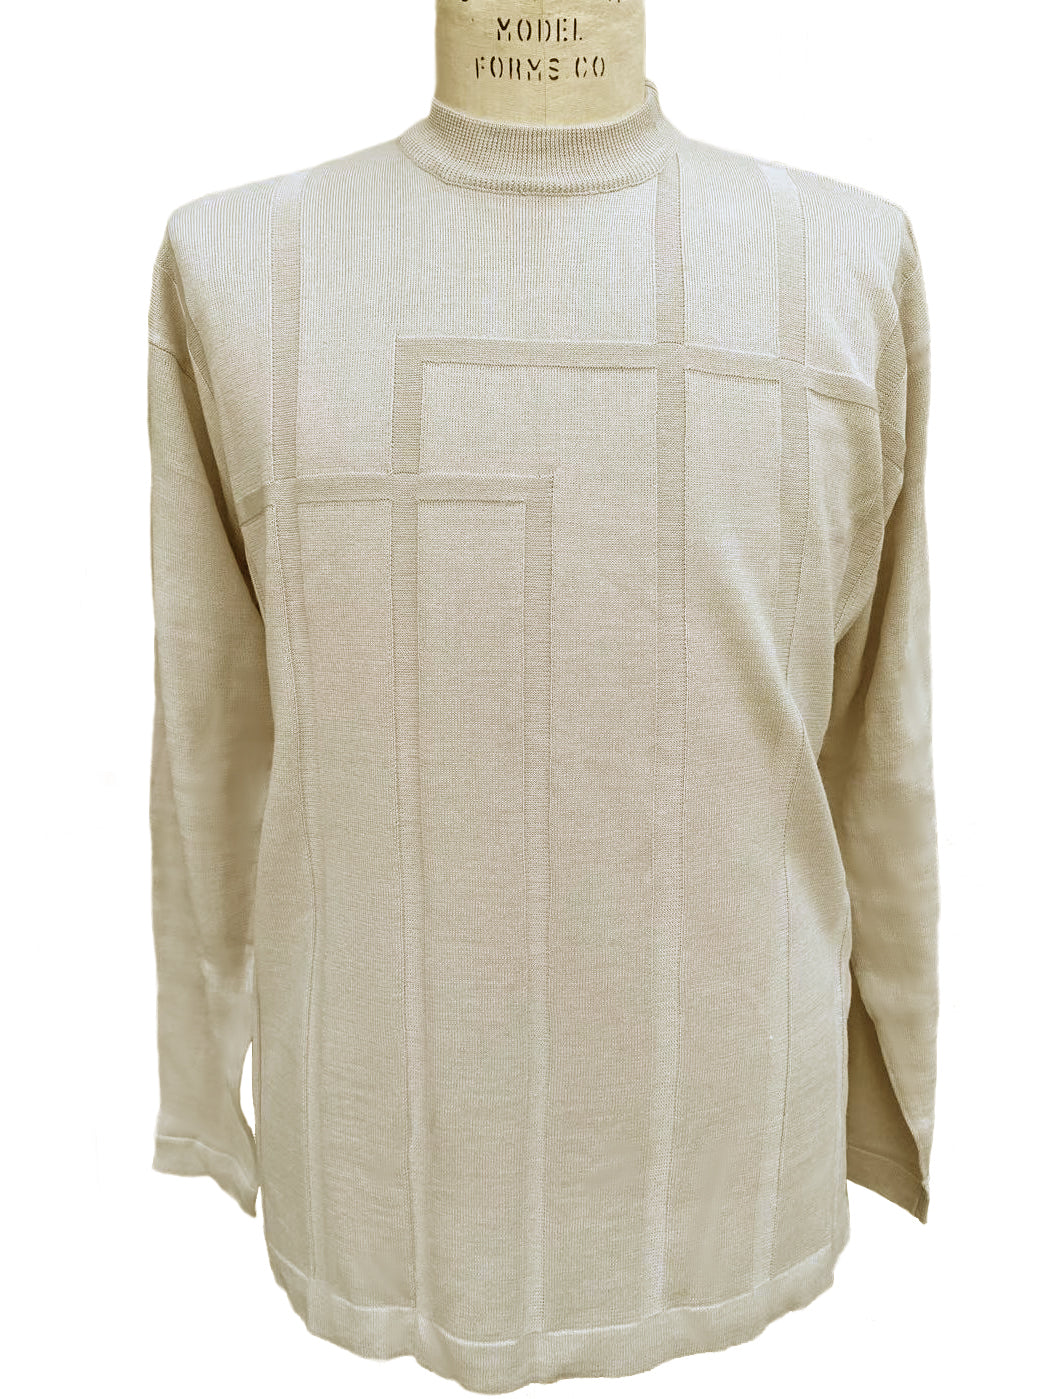 Grid Sect Thermal Long Sleeve Shirt - Khaki